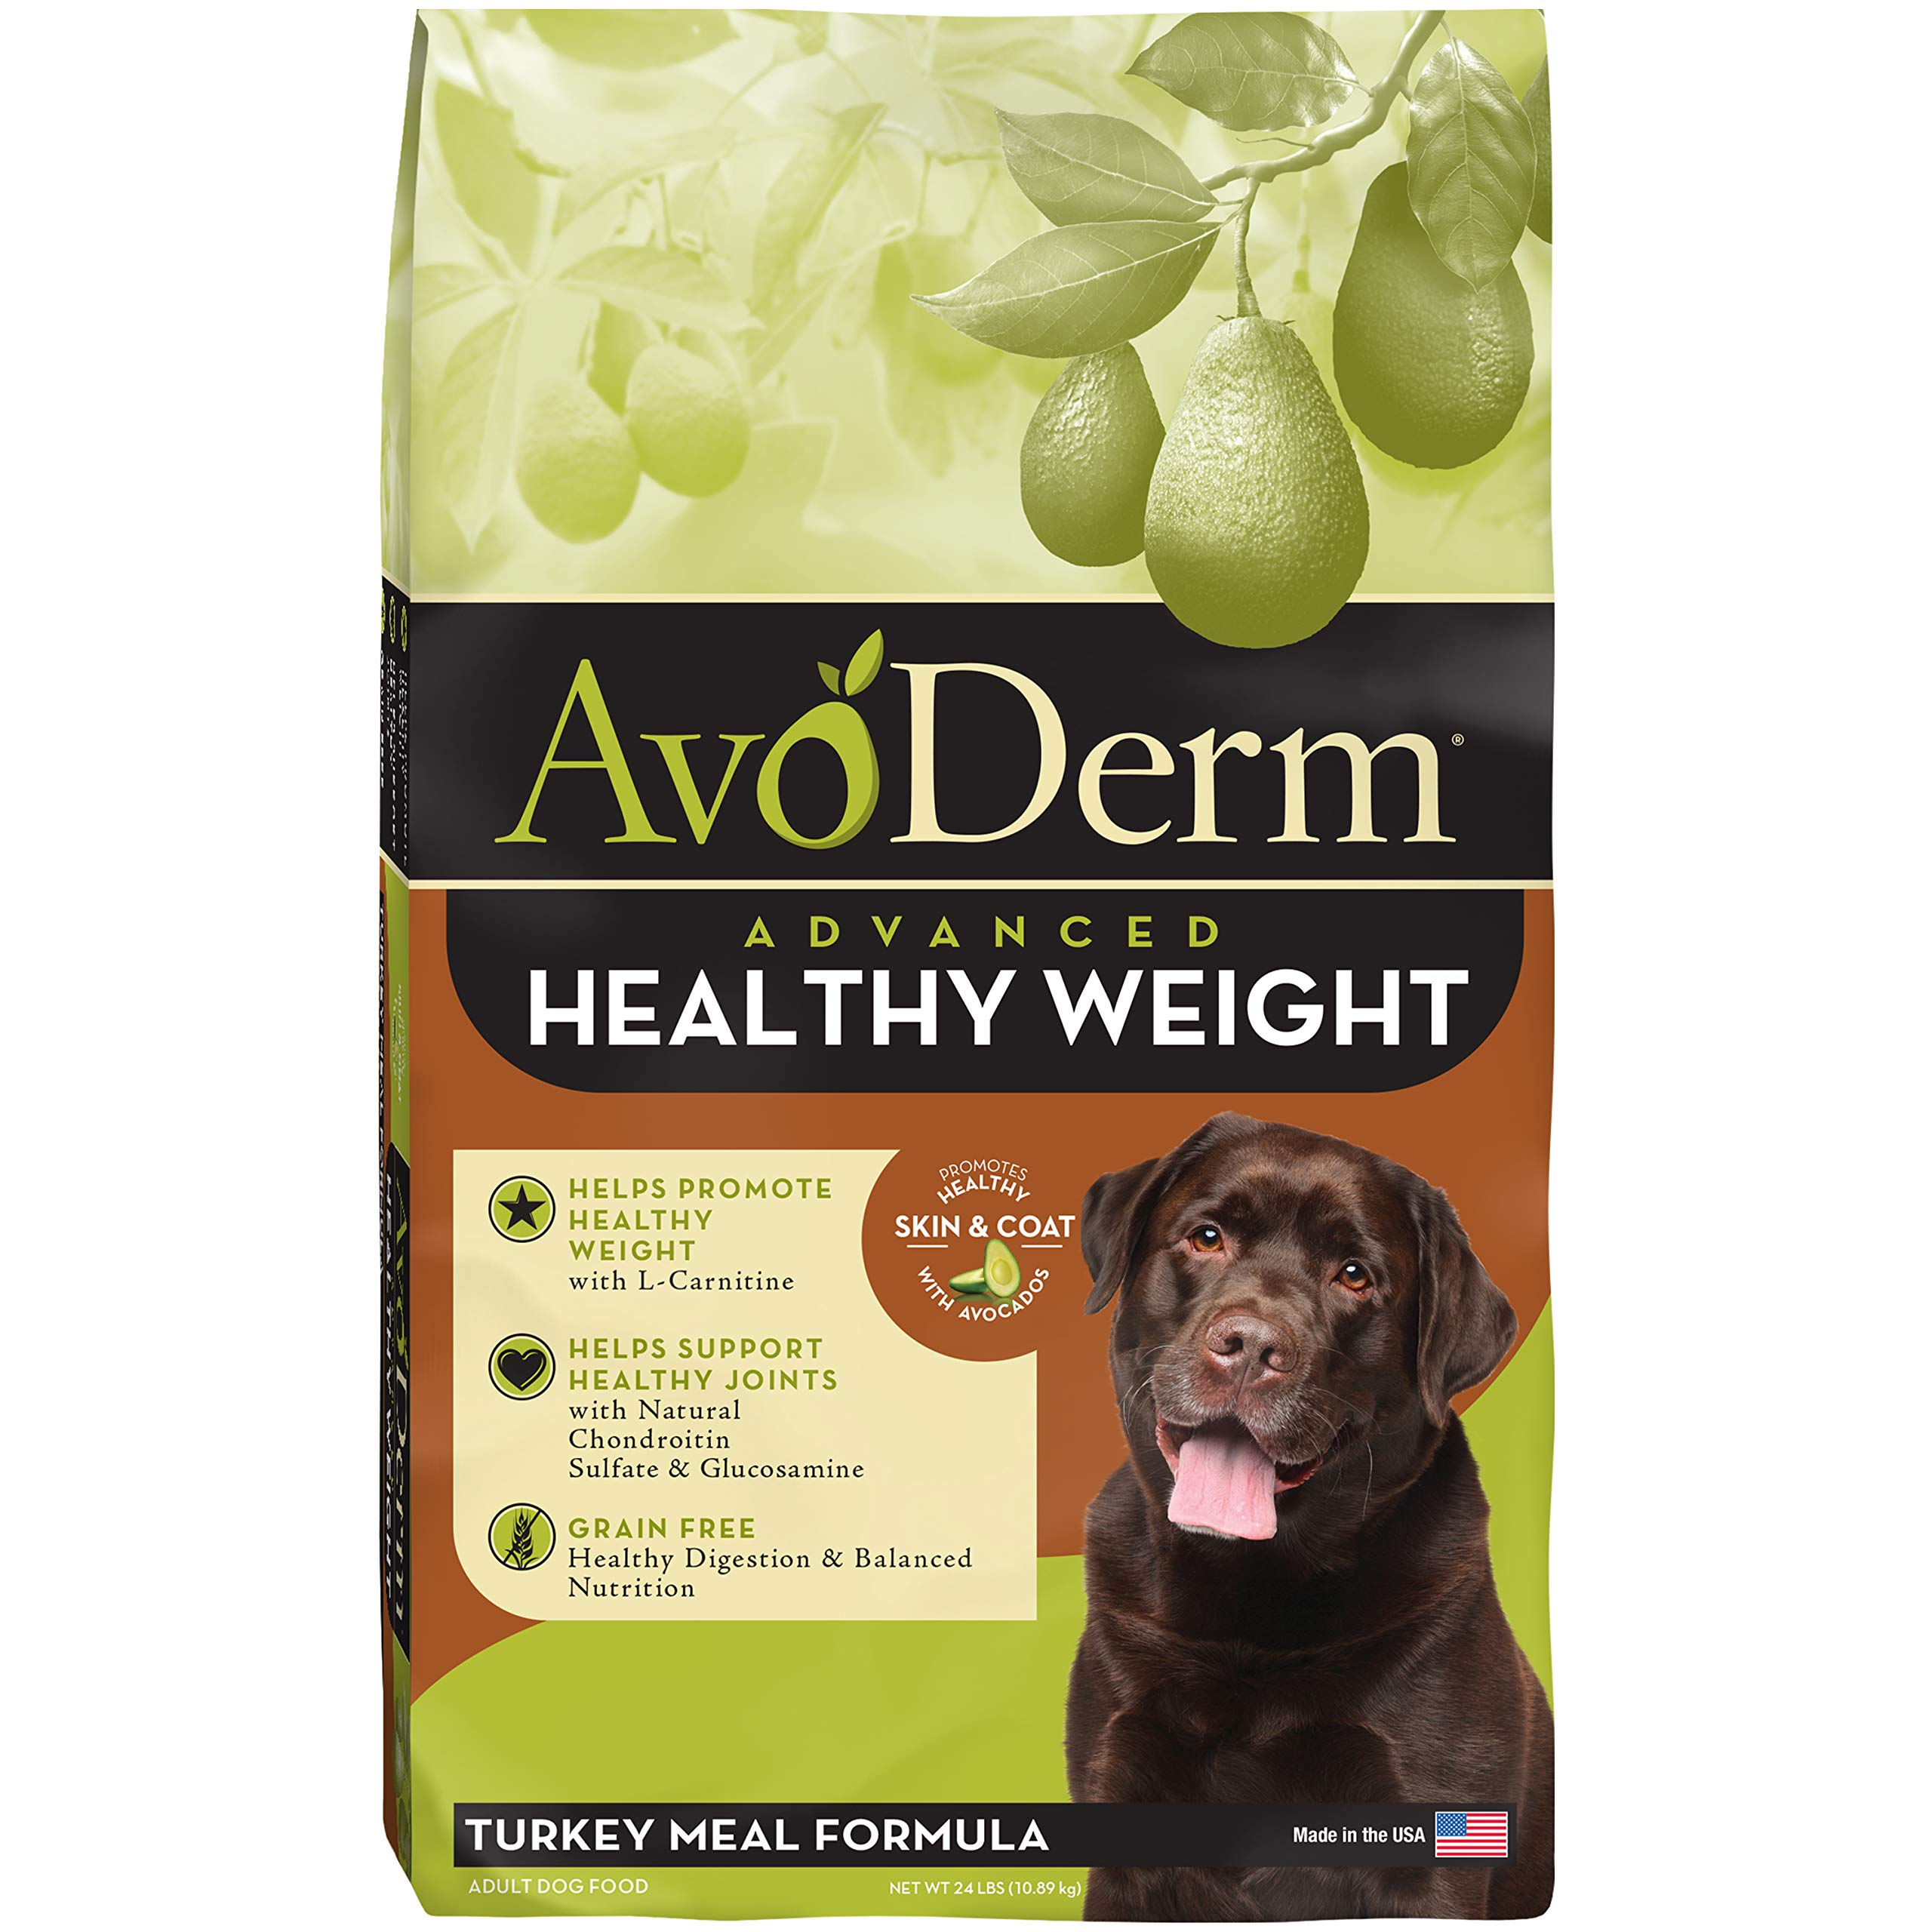 AvoDerm Natural Advanced Healthy Weight Dry Dog Food, Grain Free with L-Carnitine, Turkey Formula, 24-Pound by AvoDerm